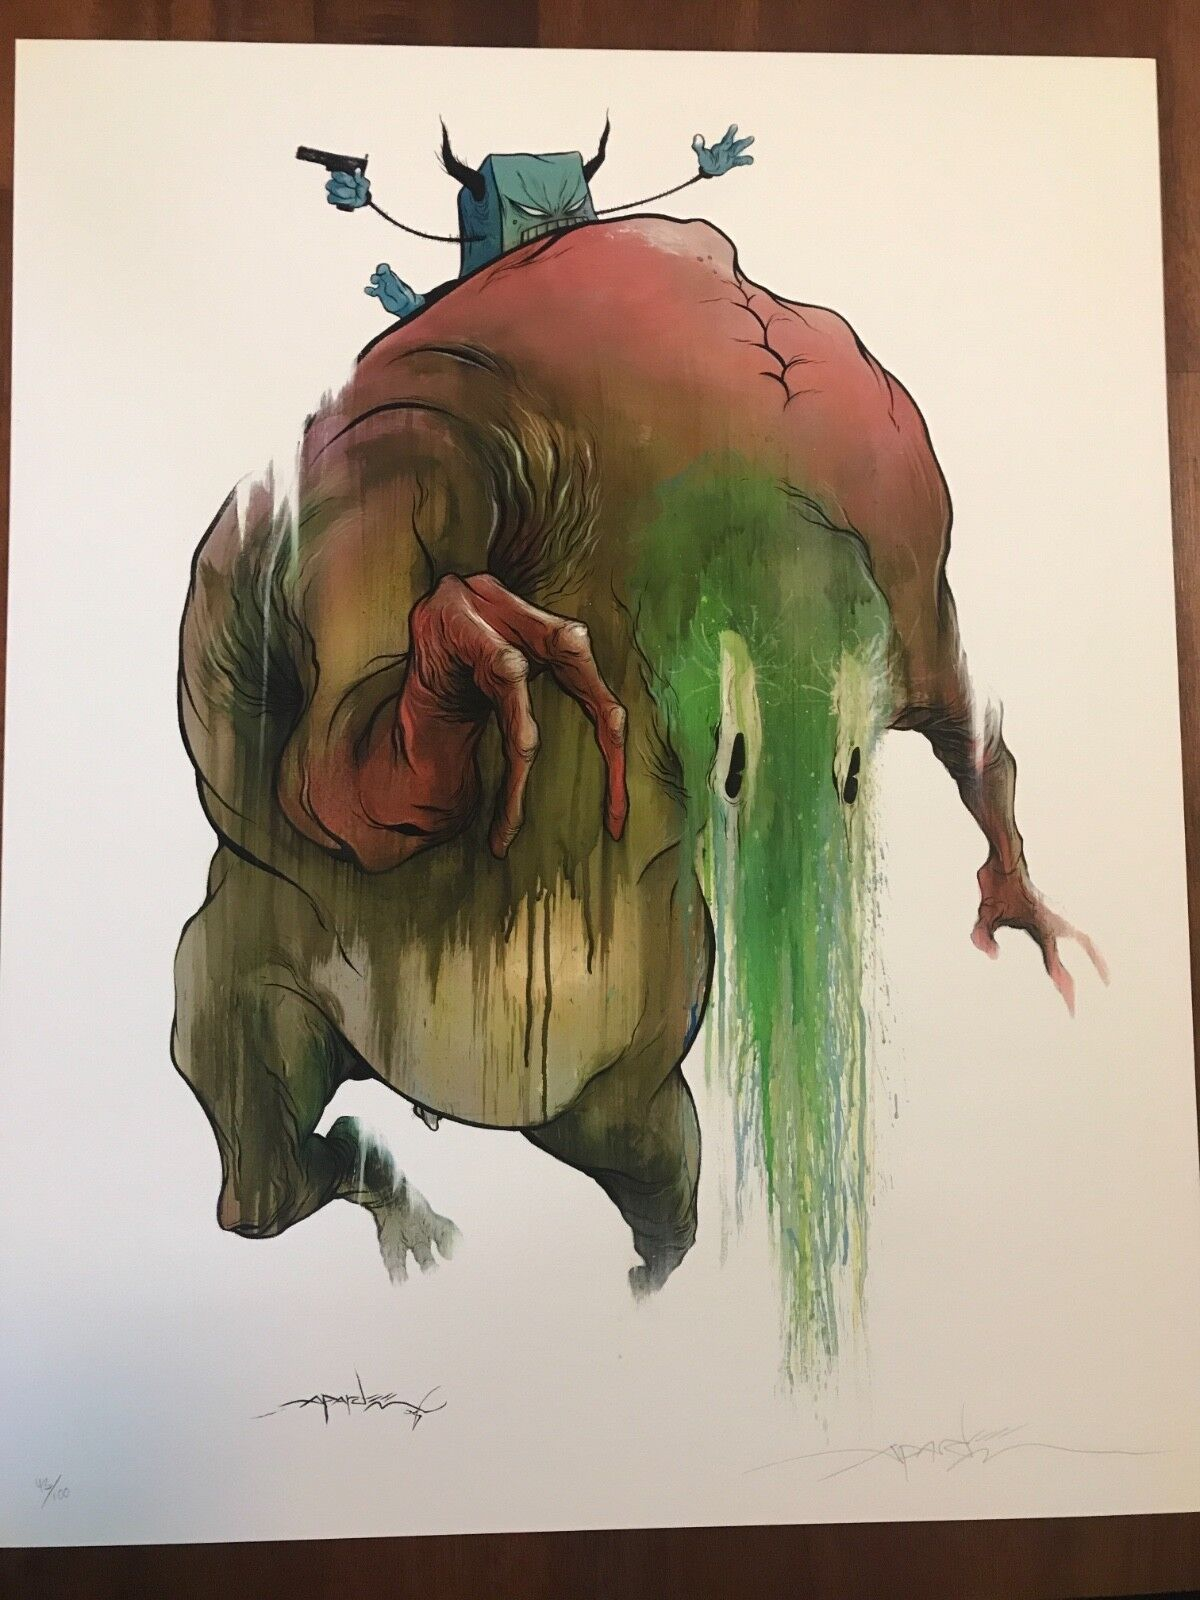 Alex Pardee Riding The Brown Lazy Face Print - $125.00